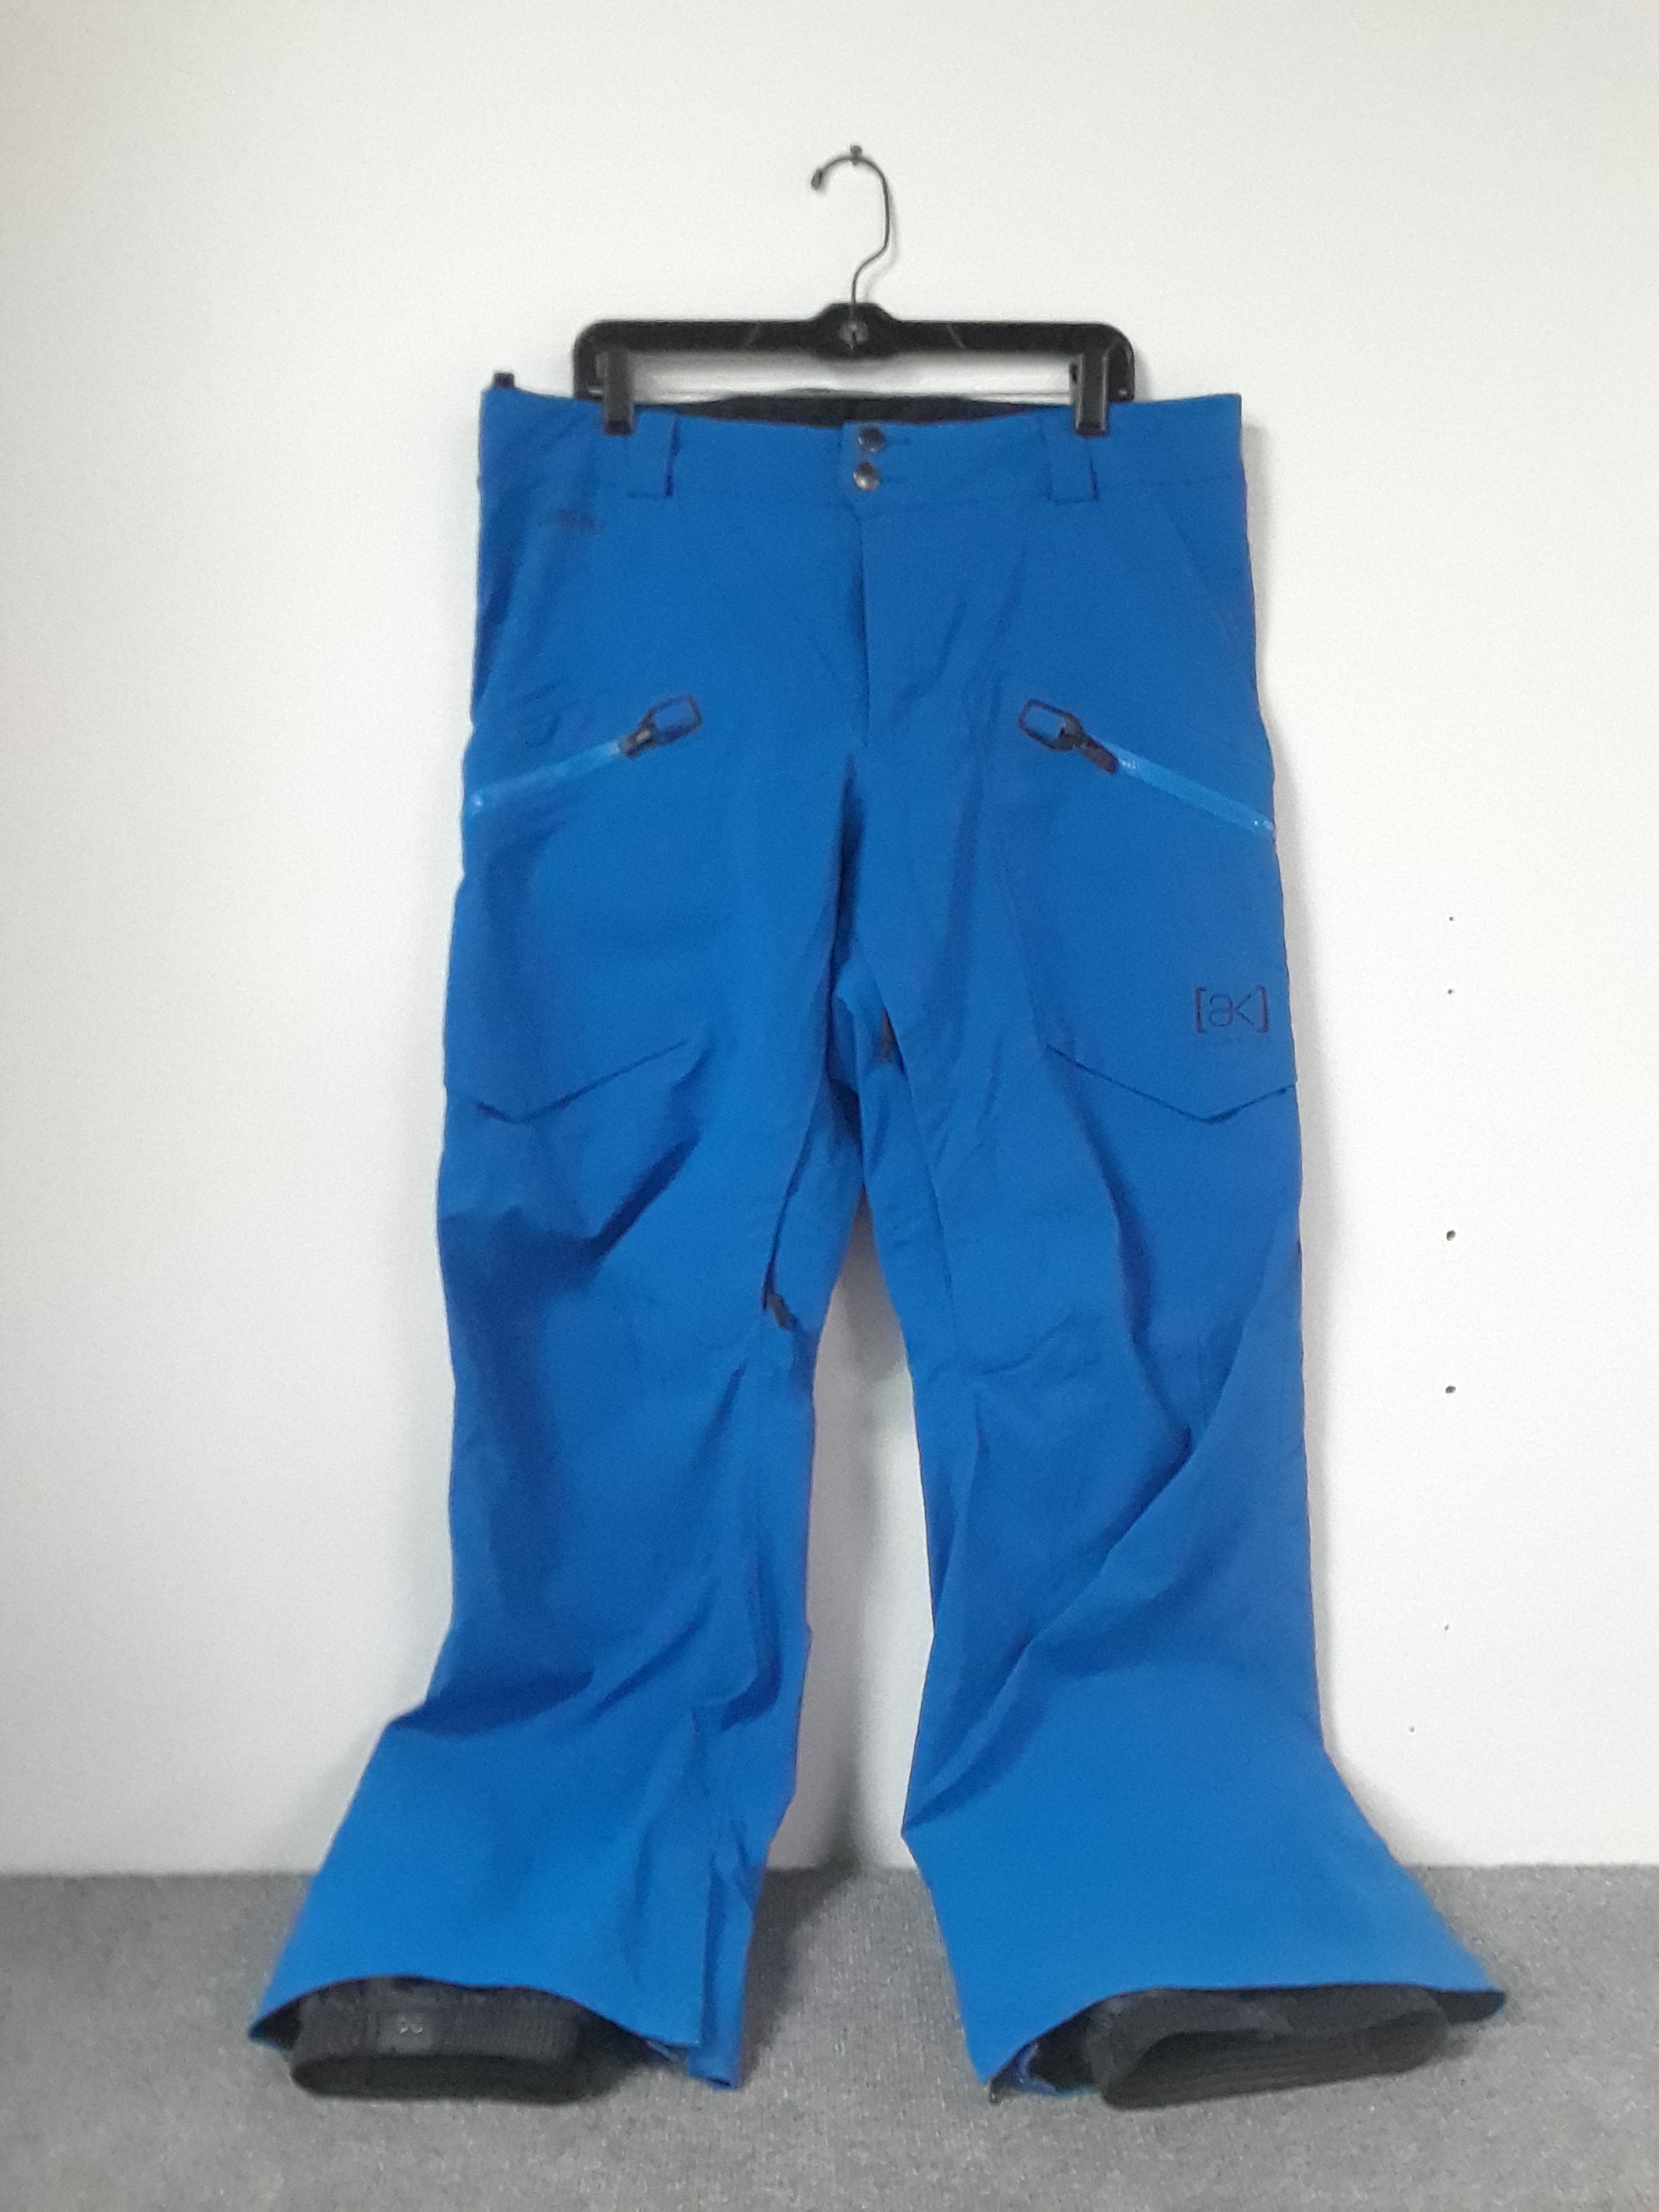 Keep the bottom half dry with these brand new Burton AK Gore-Tex pants. A $400 value priced at $199!